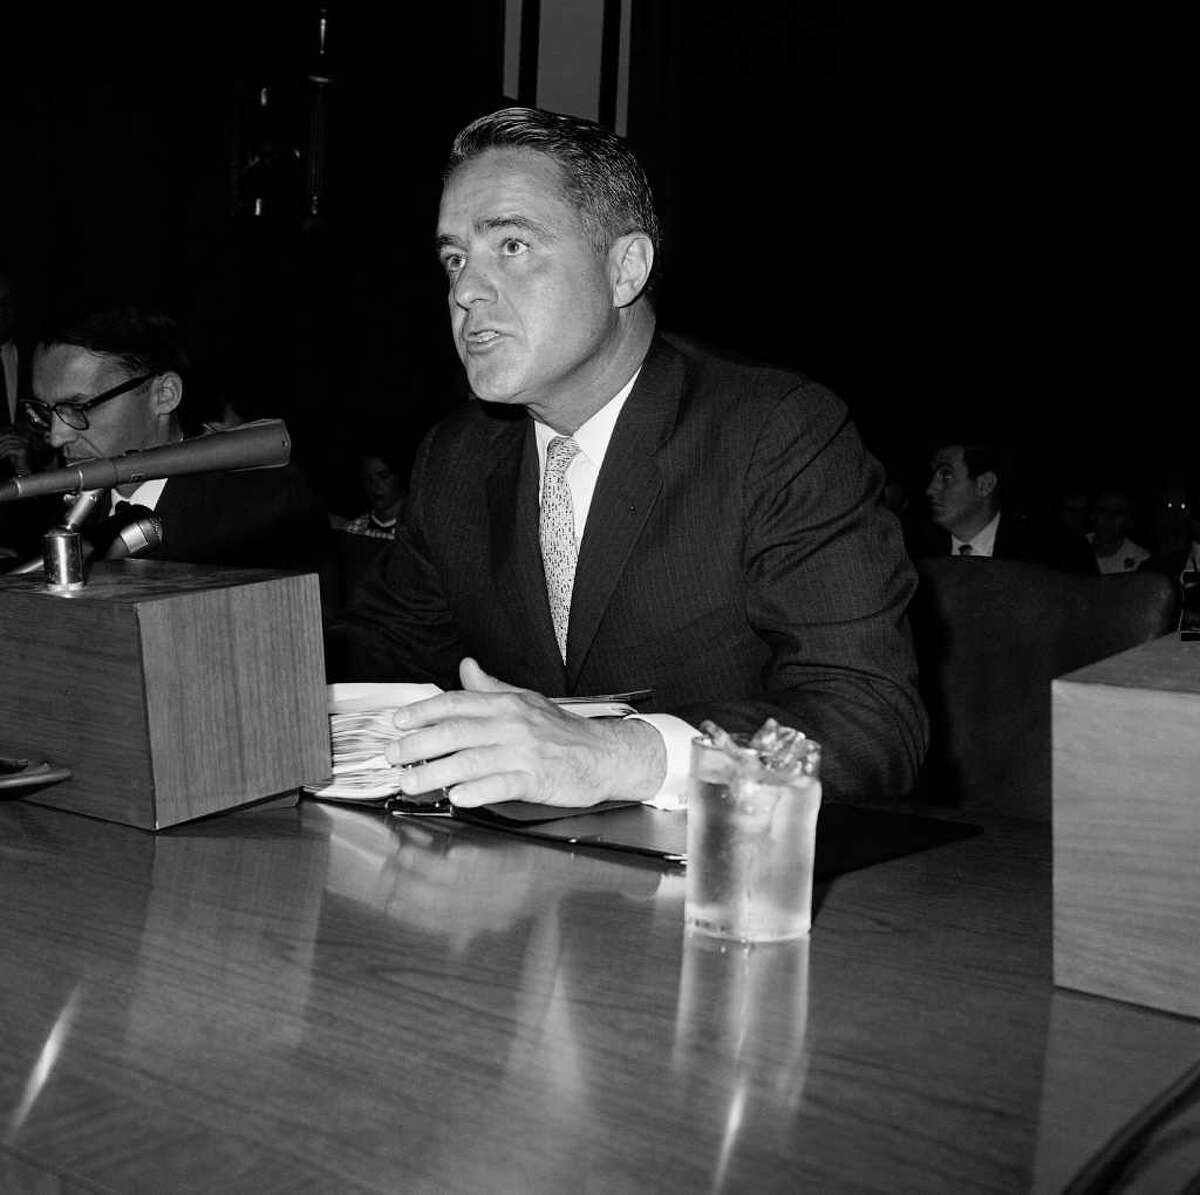 This June 9, 1965 file photo shows R. Sargent Shriver at a Senate hearing in Washington. Shriver, the exuberant public servant and Kennedy in-law whose singular career included directing the Peace Corps, fighting the